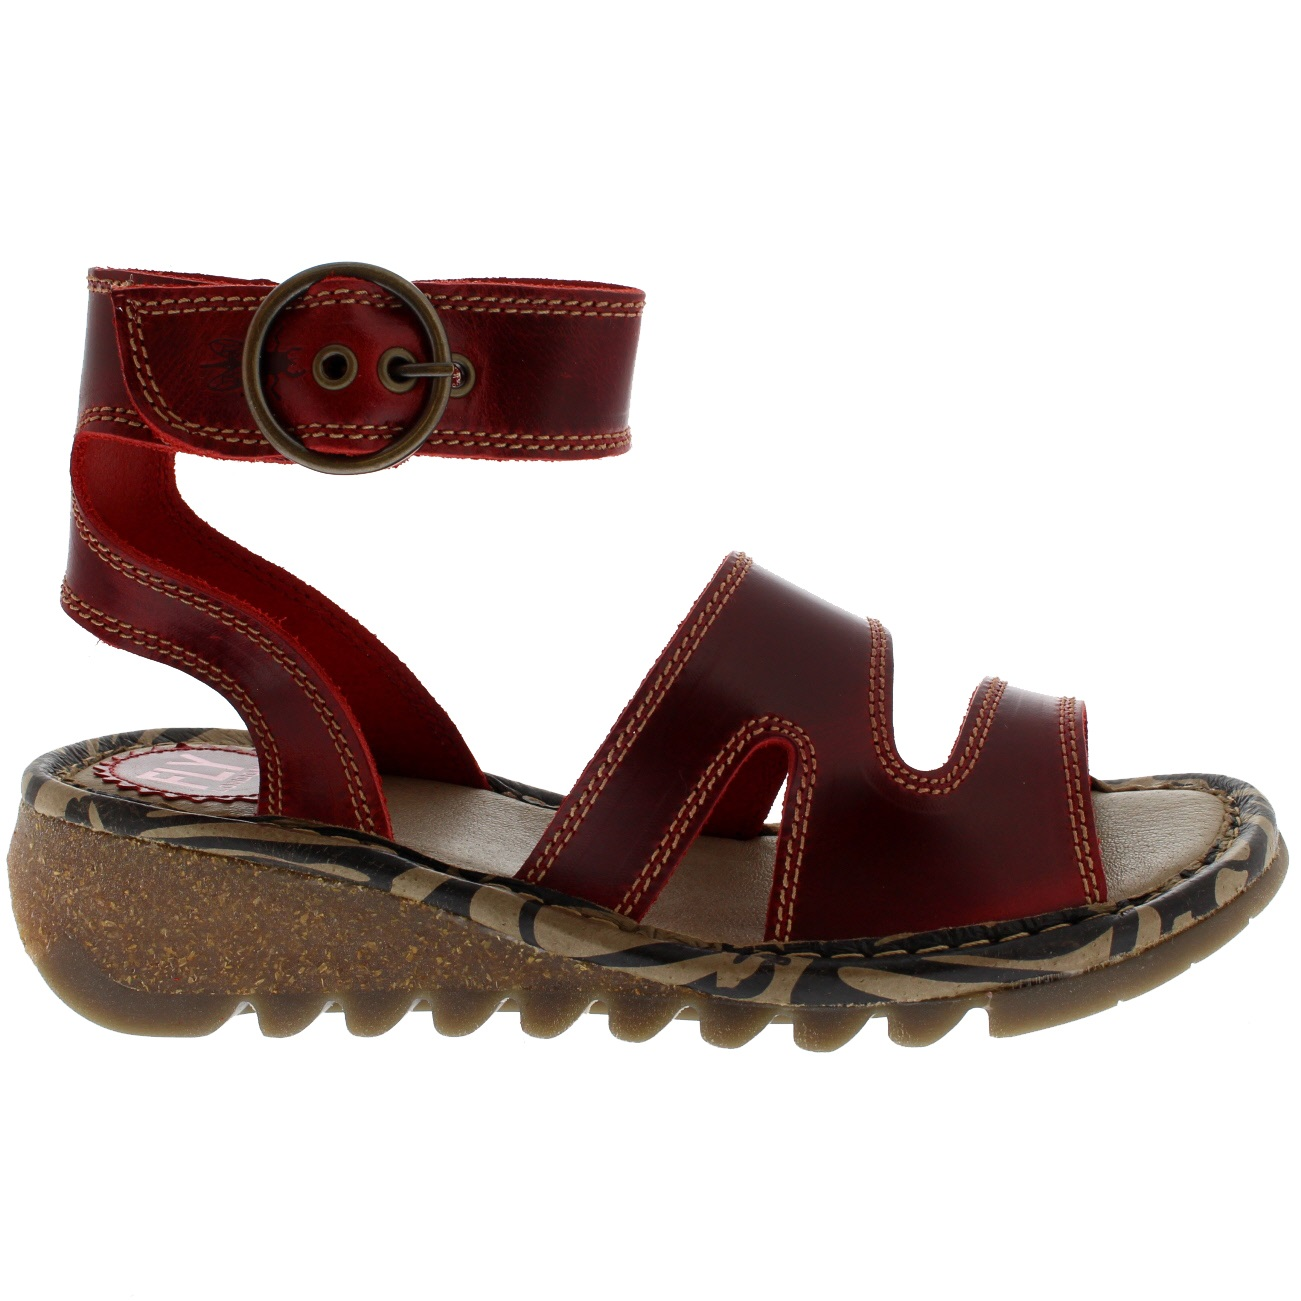 Ladies-Fly-London-Tily-Leather-Strappy-Summer-Casual-Peep-Toe-Sandals-All-Sizes